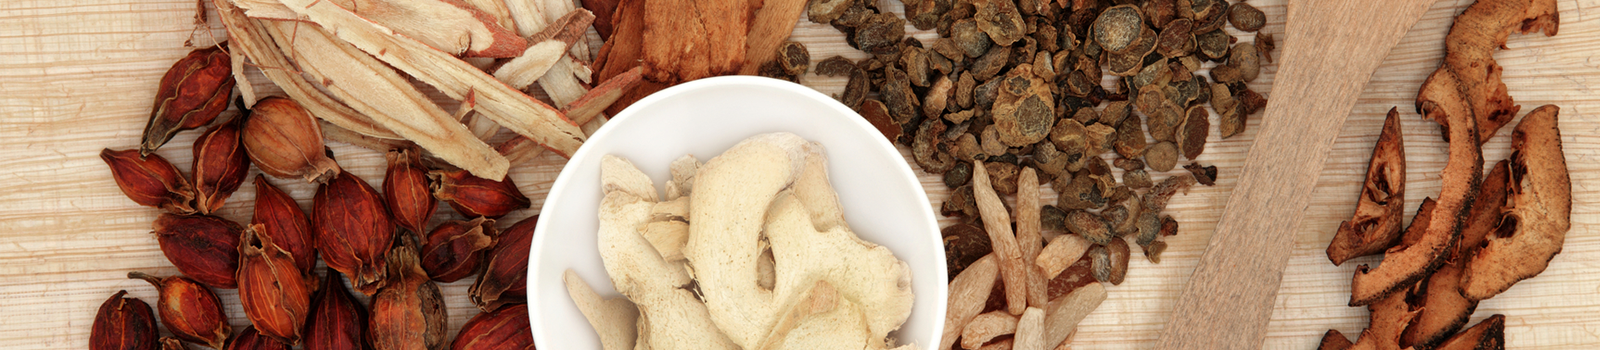 Chinese Medicine|Chinese Herbs|Huang Qi